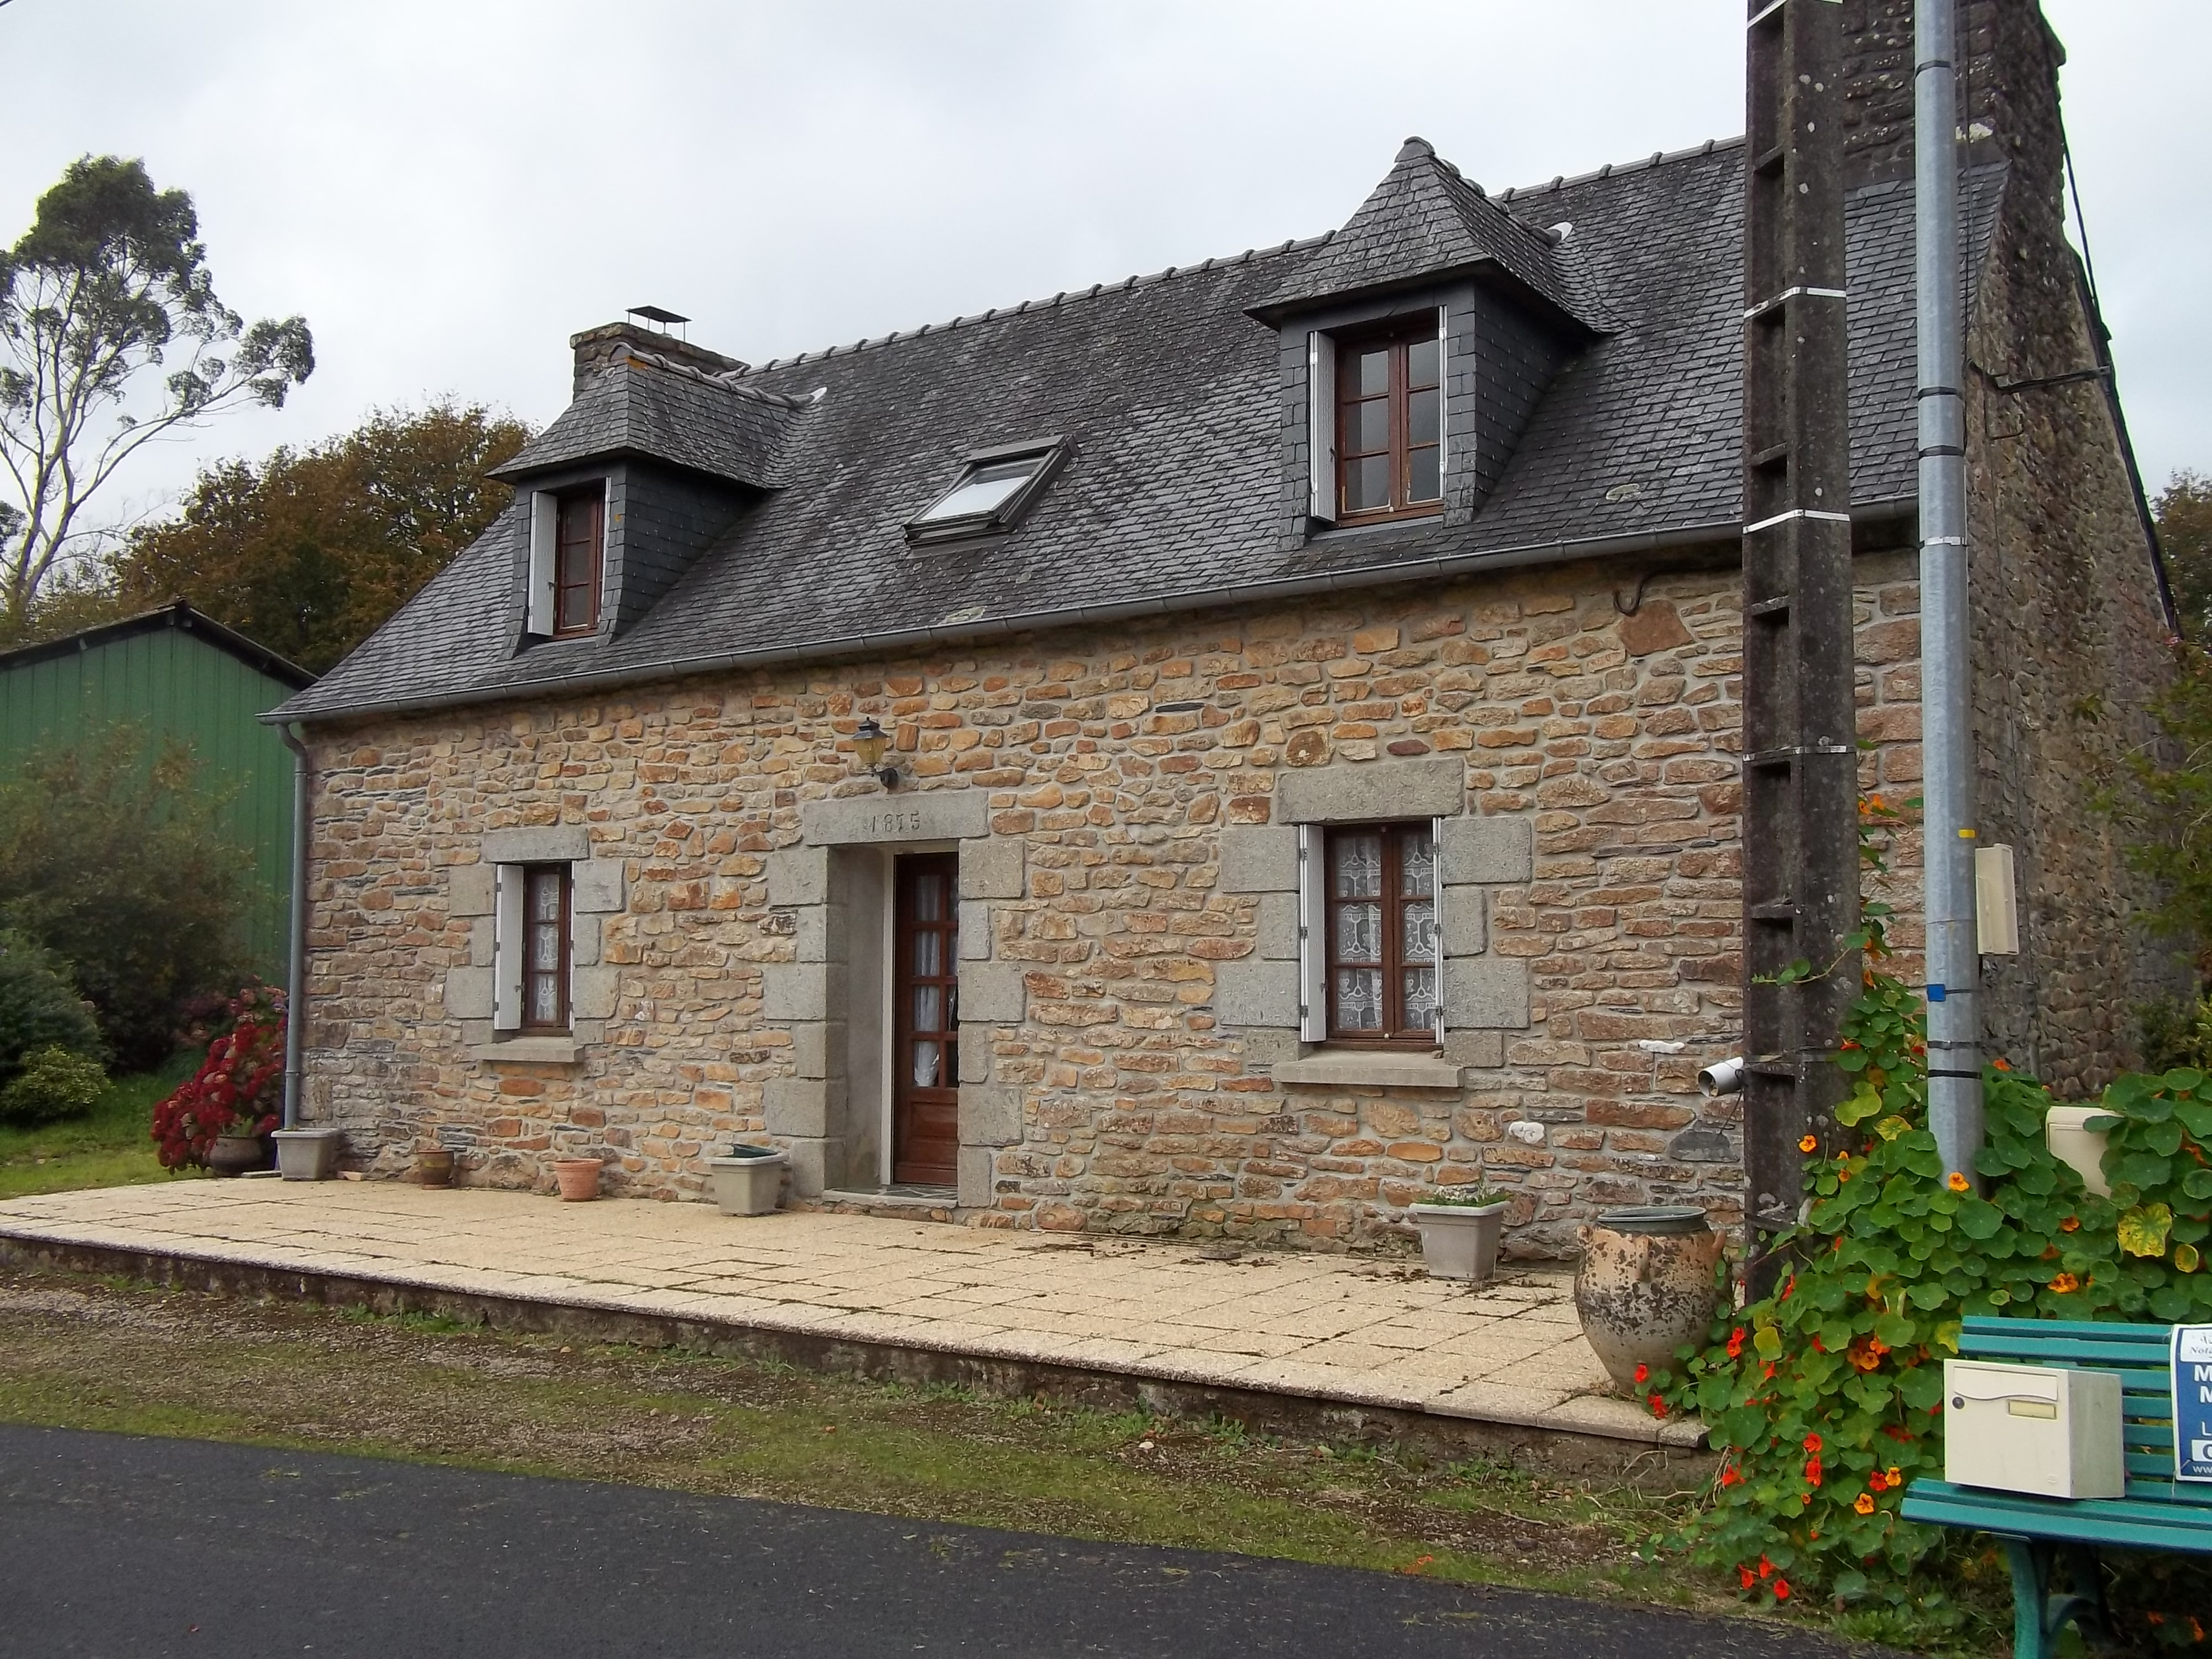 Brittany property for sale   english speaking agents in brittany ...